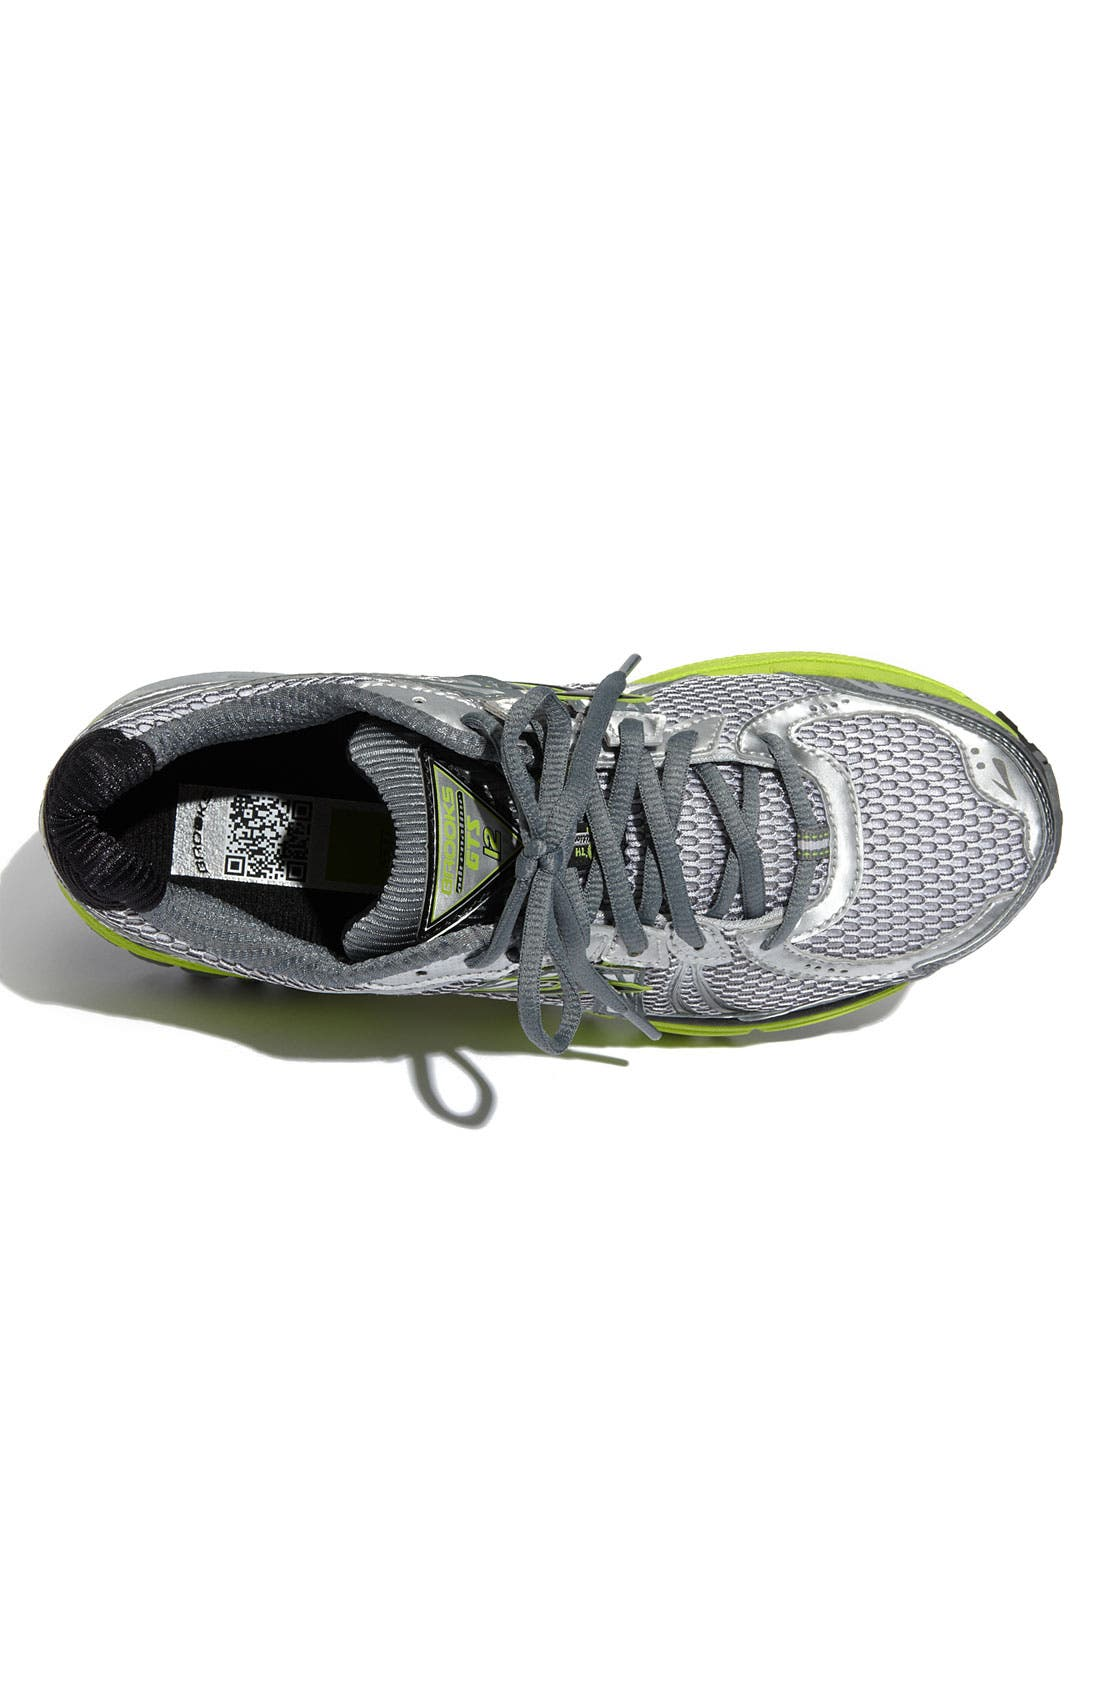 Alternate Image 3  - Brooks 'Adrenaline GTS 12' Running Shoe (Men)